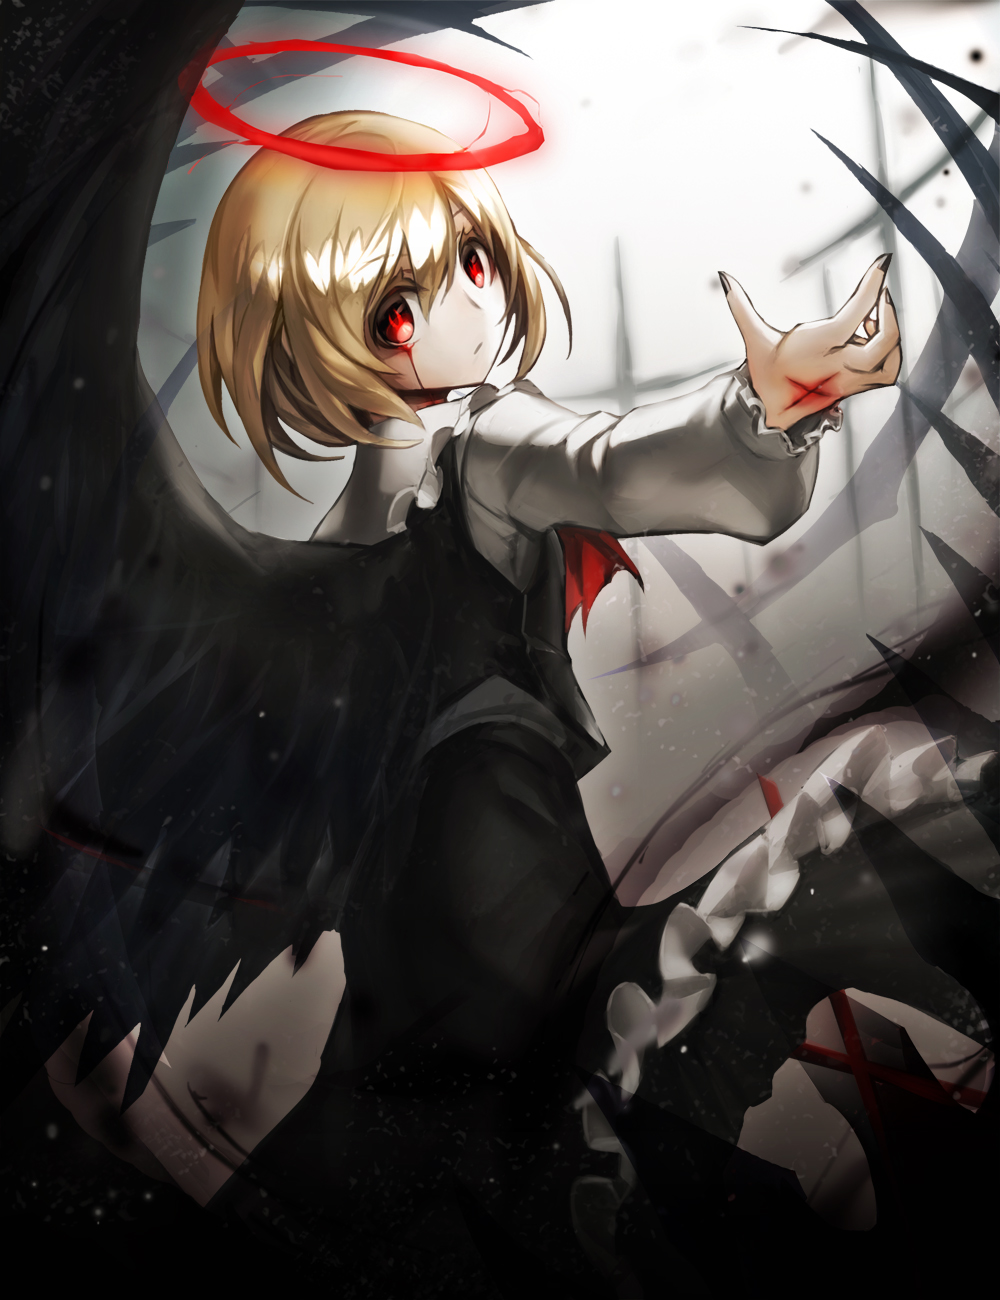 1girl black_nails black_skirt black_vest black_wings blonde_hair blood bloody_tears closed_mouth collar collared_shirt ex-rumia expressionless feathered_wings frilled_collar frilled_skirt frills halo highres injury long_sleeves looking_at_viewer nail_polish red_eyes rumia shirt short_hair skirt solo spark621 touhou vest wings